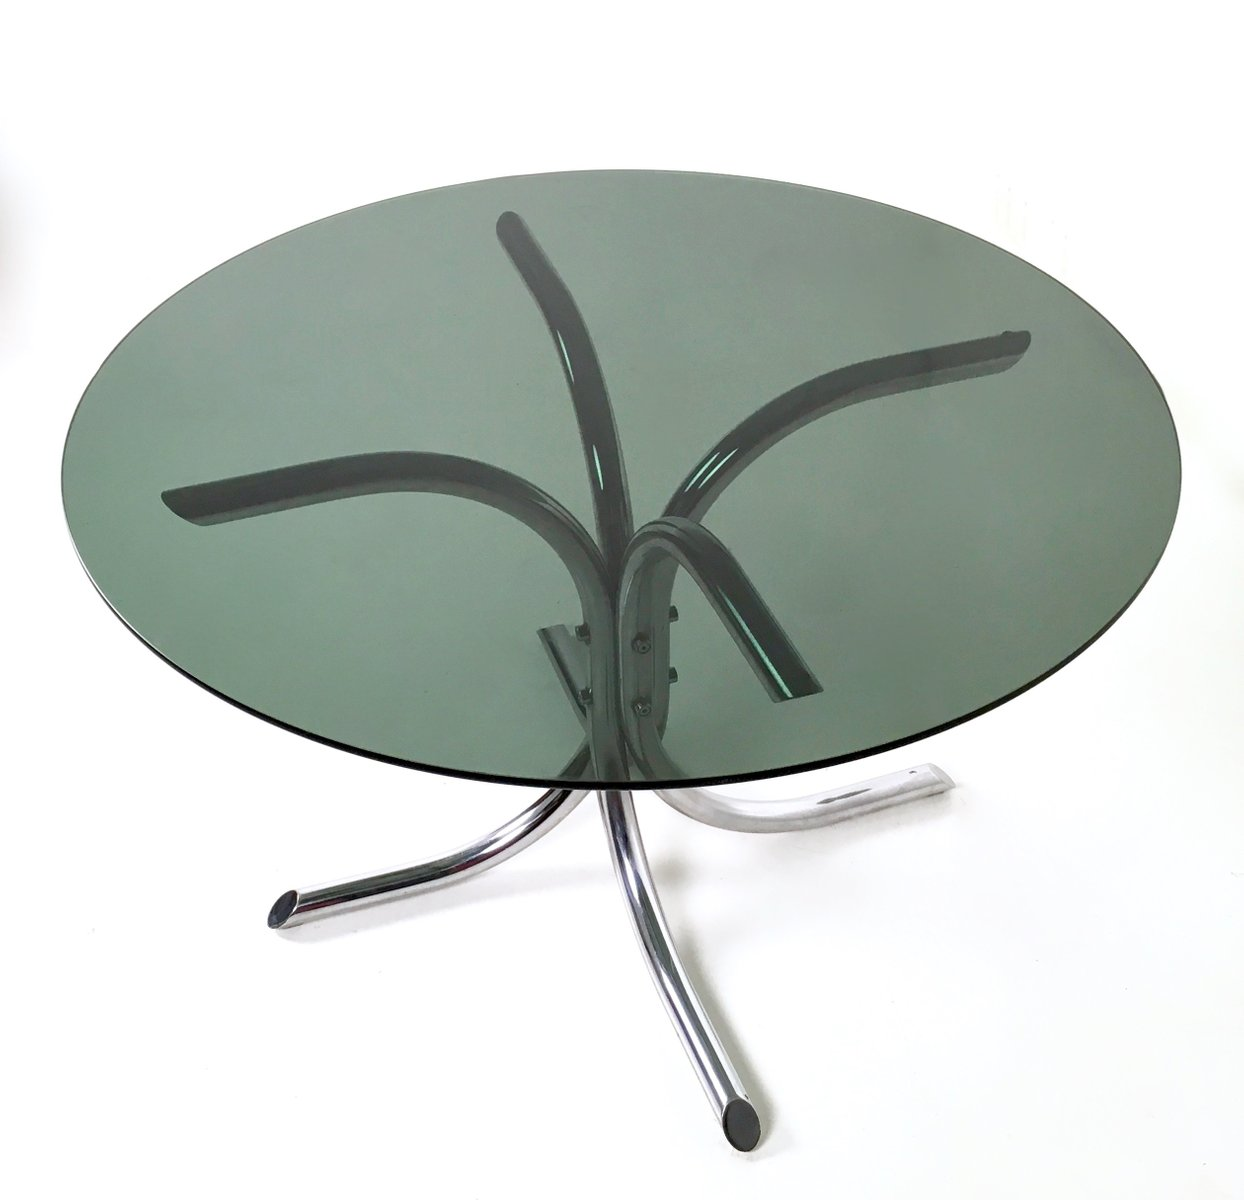 Italian Chromed Metal And Smoked Glass Dining Table, 1970s